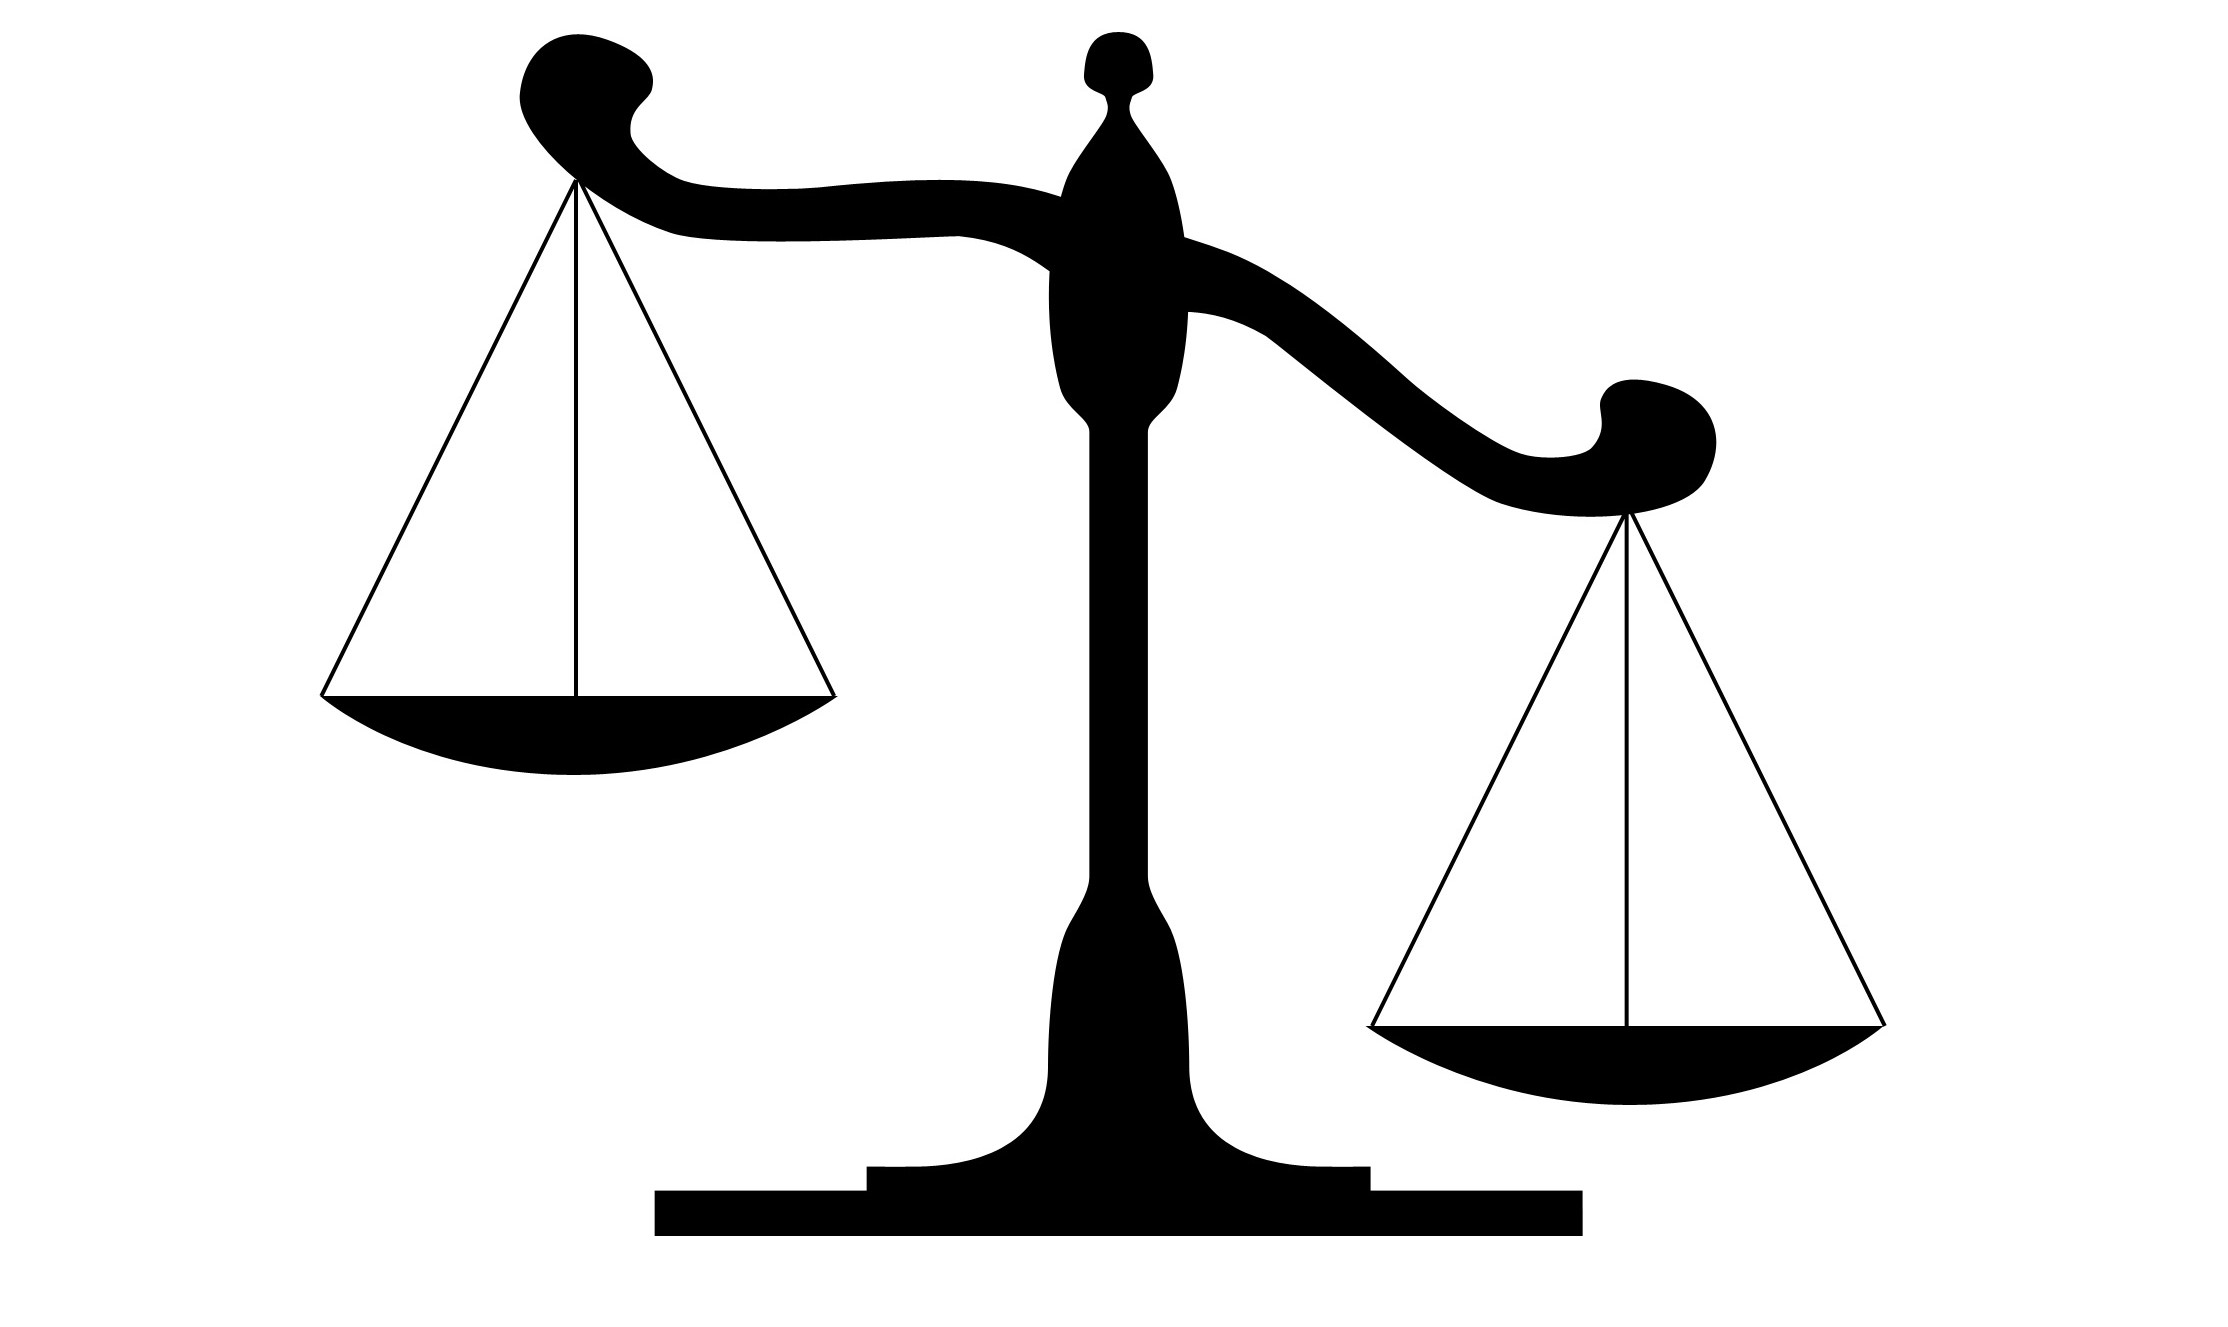 This image shows a scale to represent the justice system and how it is balanced between the different positions involved.